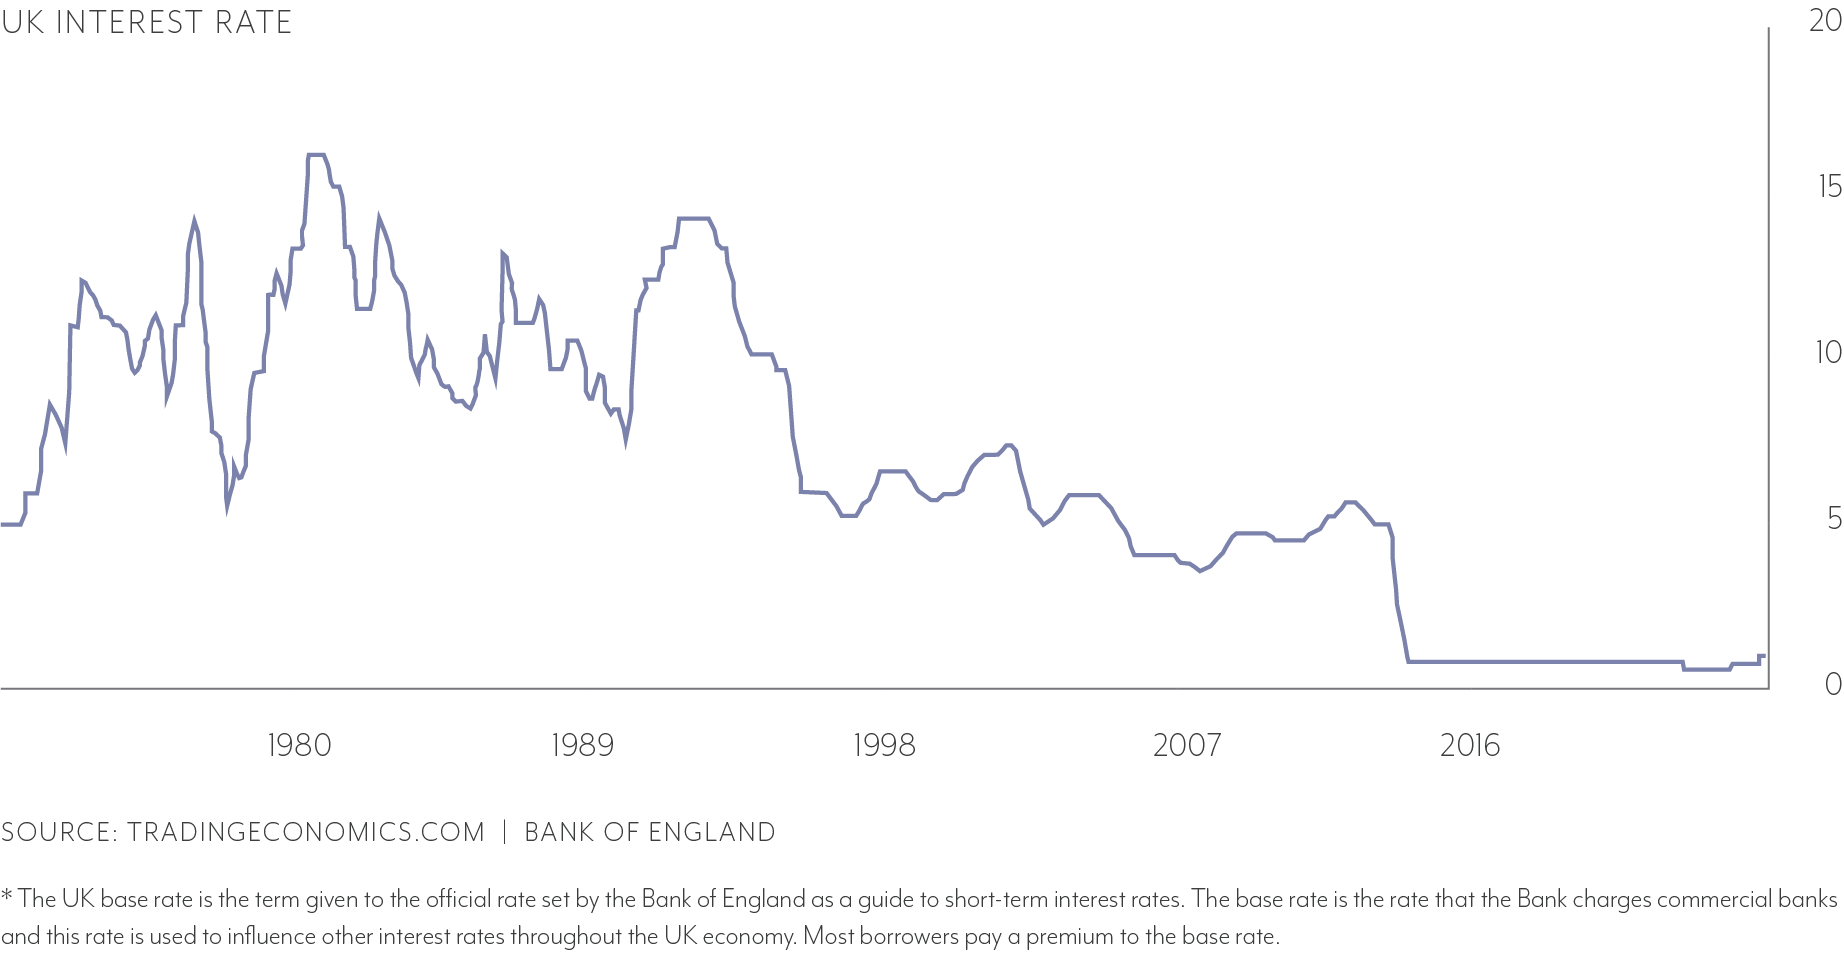 UK-interest-rates-over-time